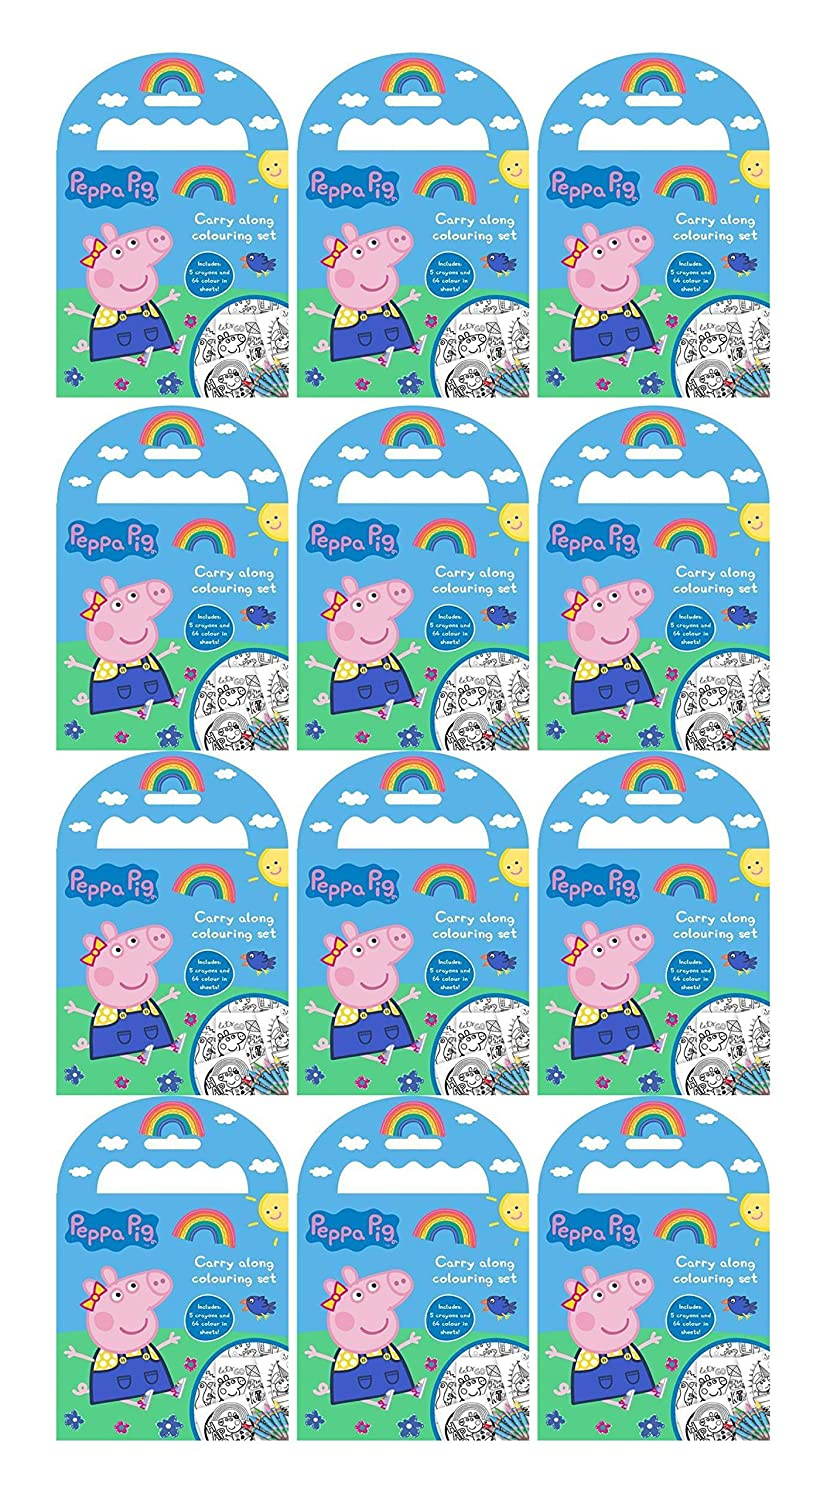 Peppa Pig Carry Along Colouring Sets (12 Pack) Alligator PECAR1-12